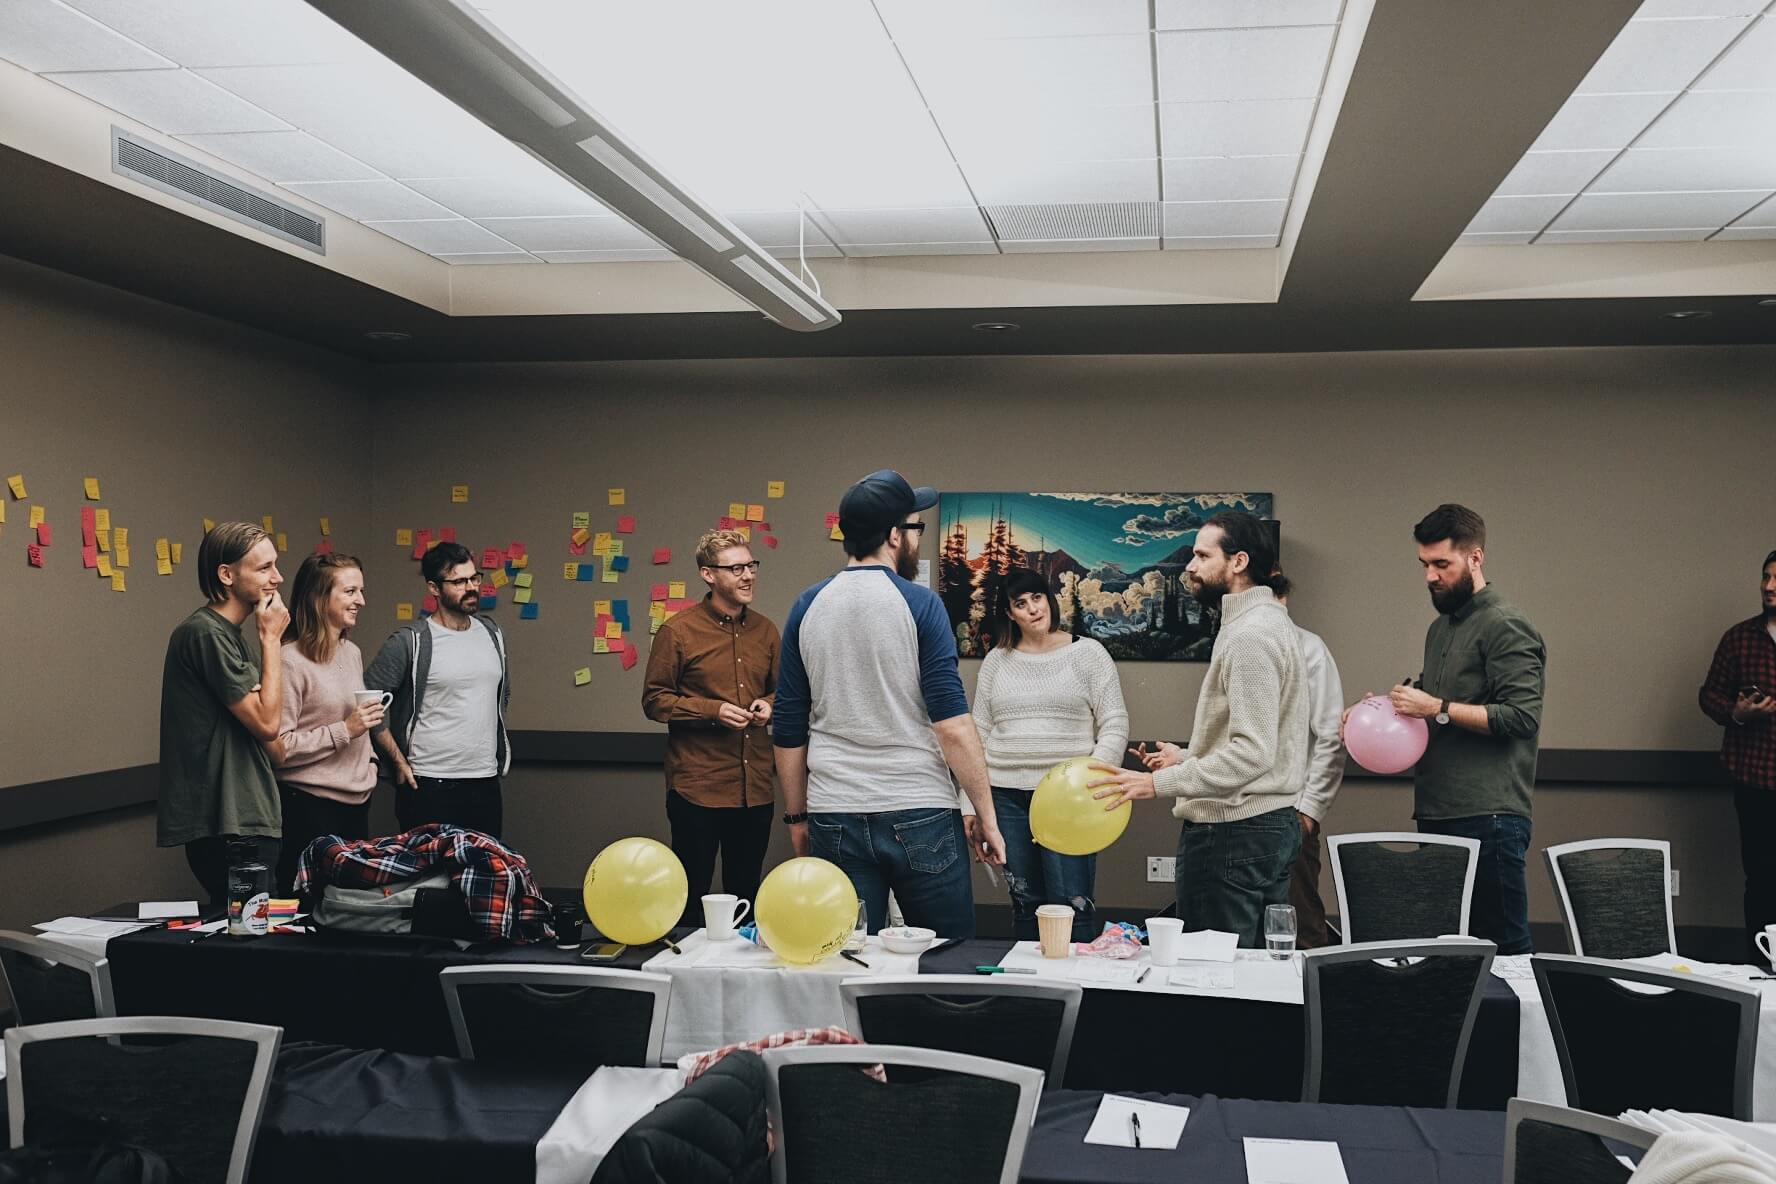 Balloons being popped during the breakout sessions at MetaLab's Remote Summit